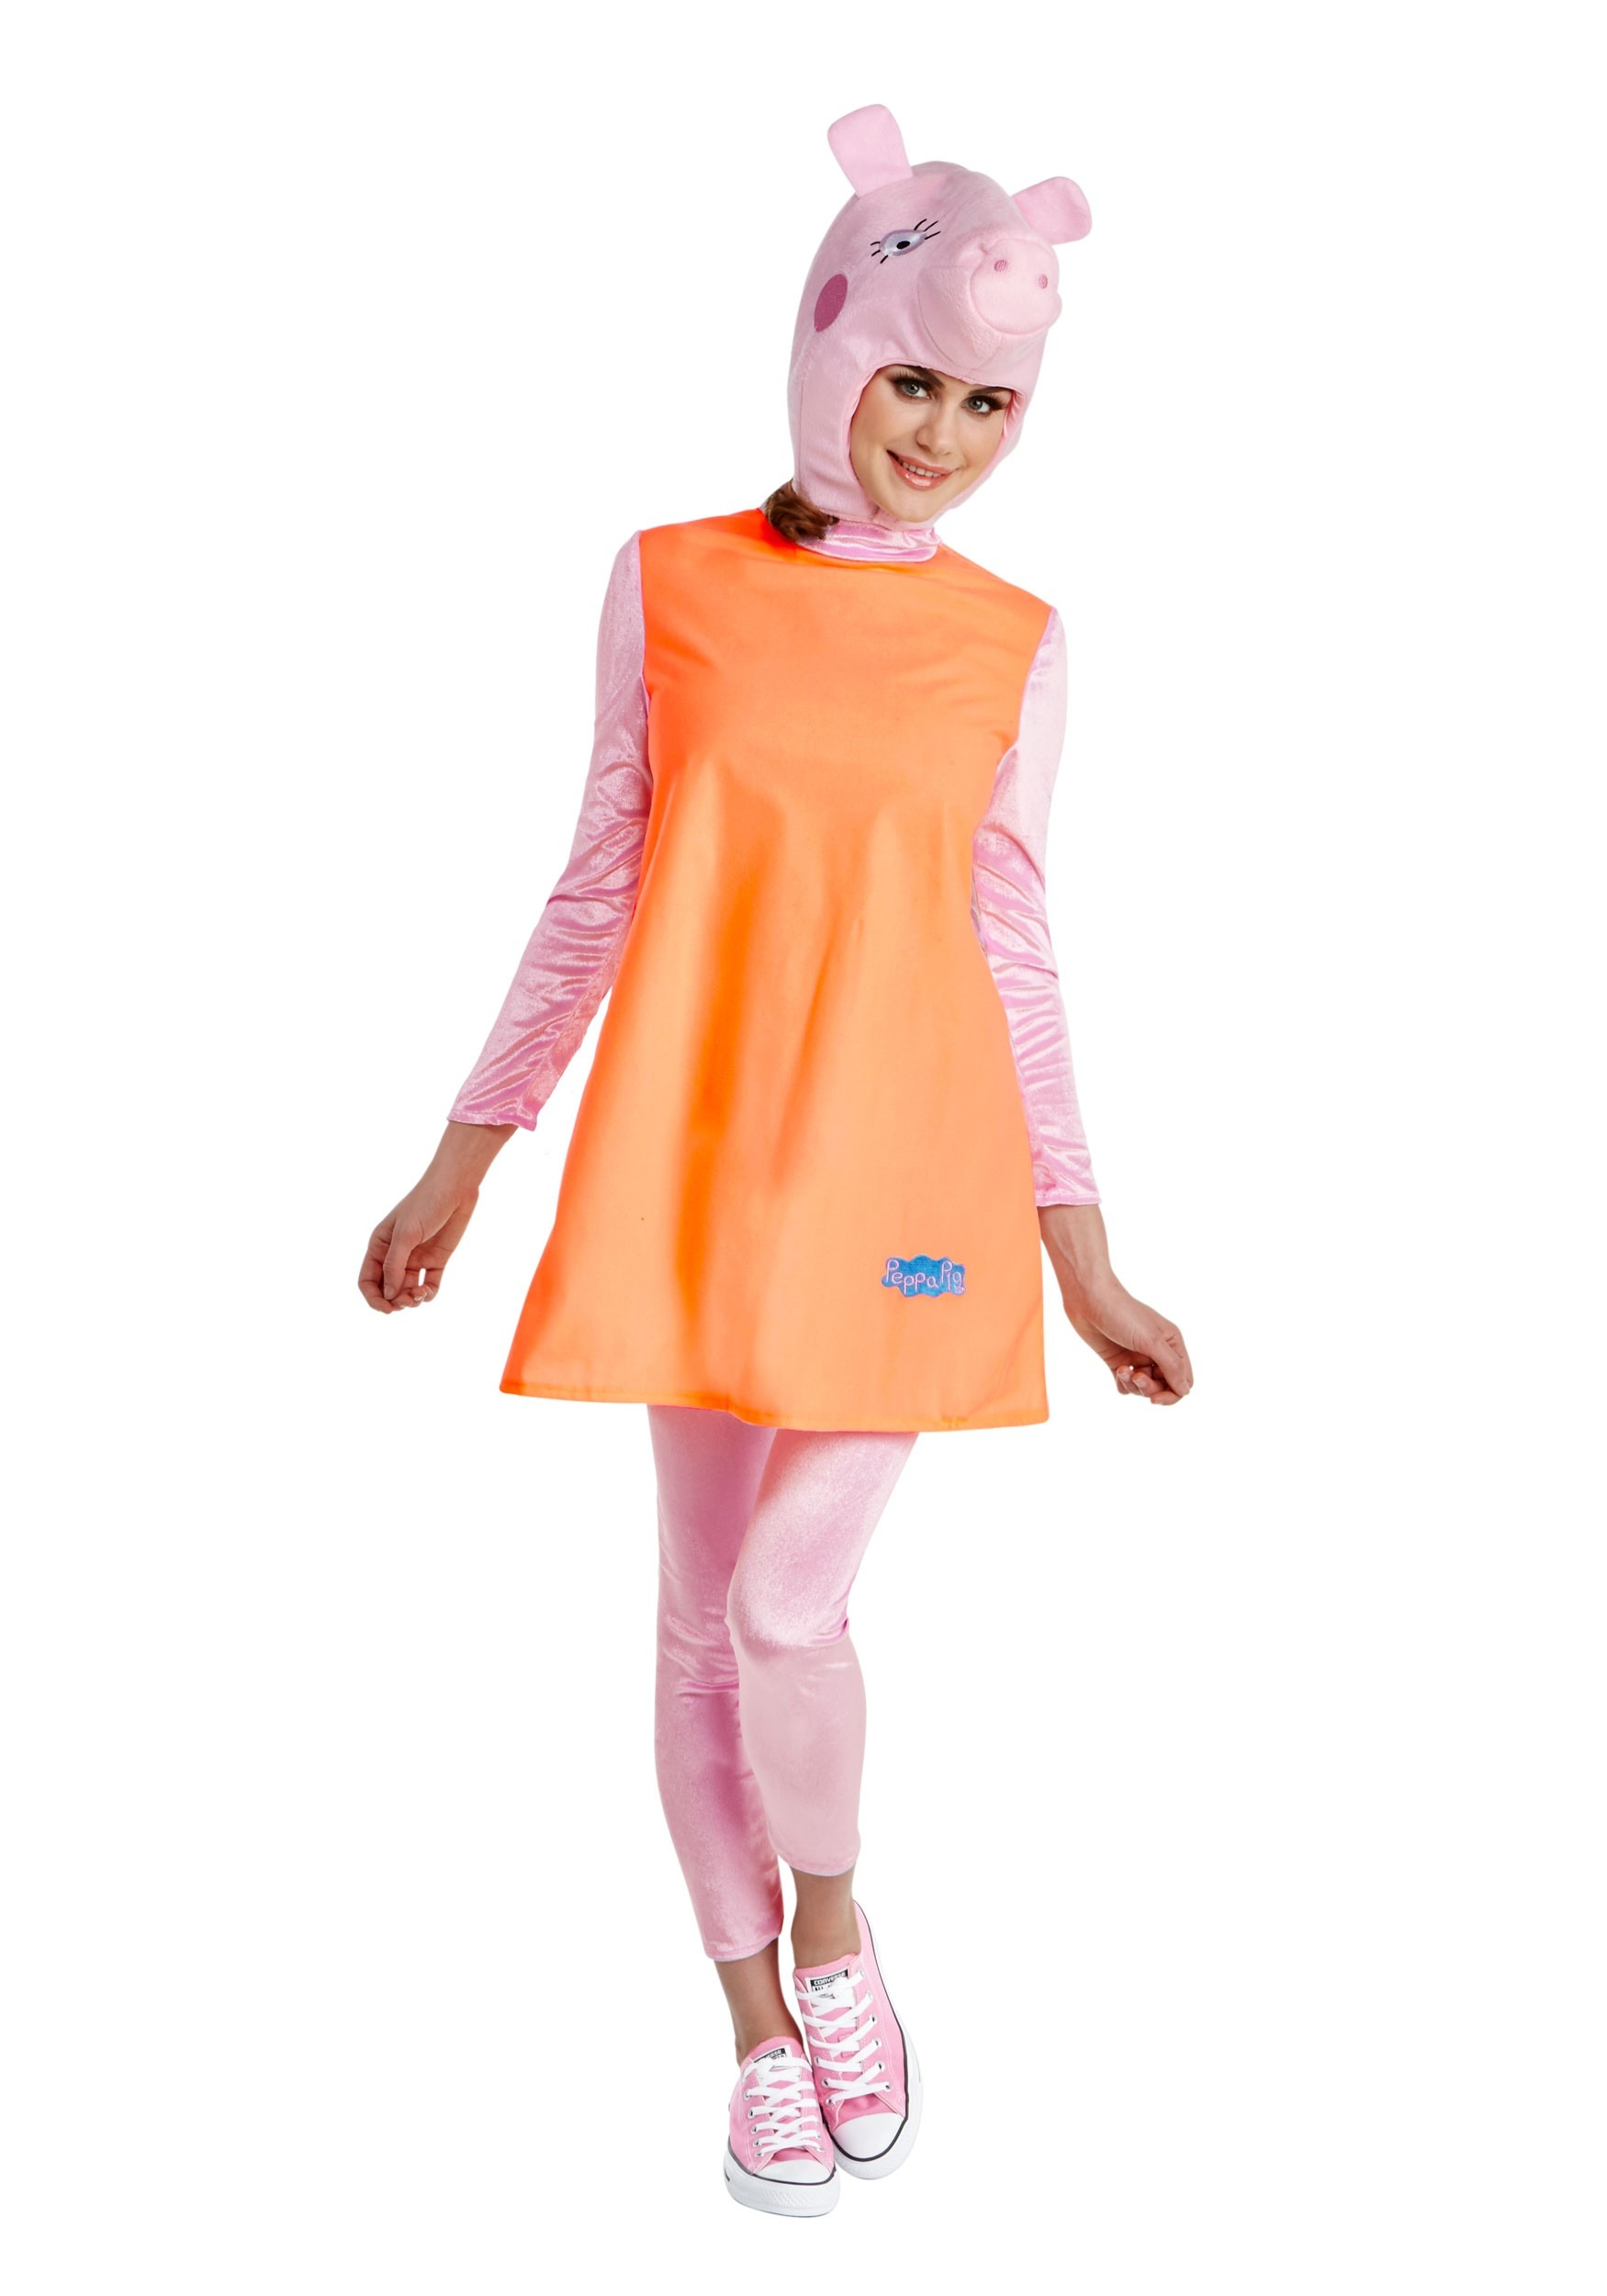 INOpets.com Anything for Pets Parents & Their Pets Mummy Pig Women's Fancy Dress Costume from Peppa Pig